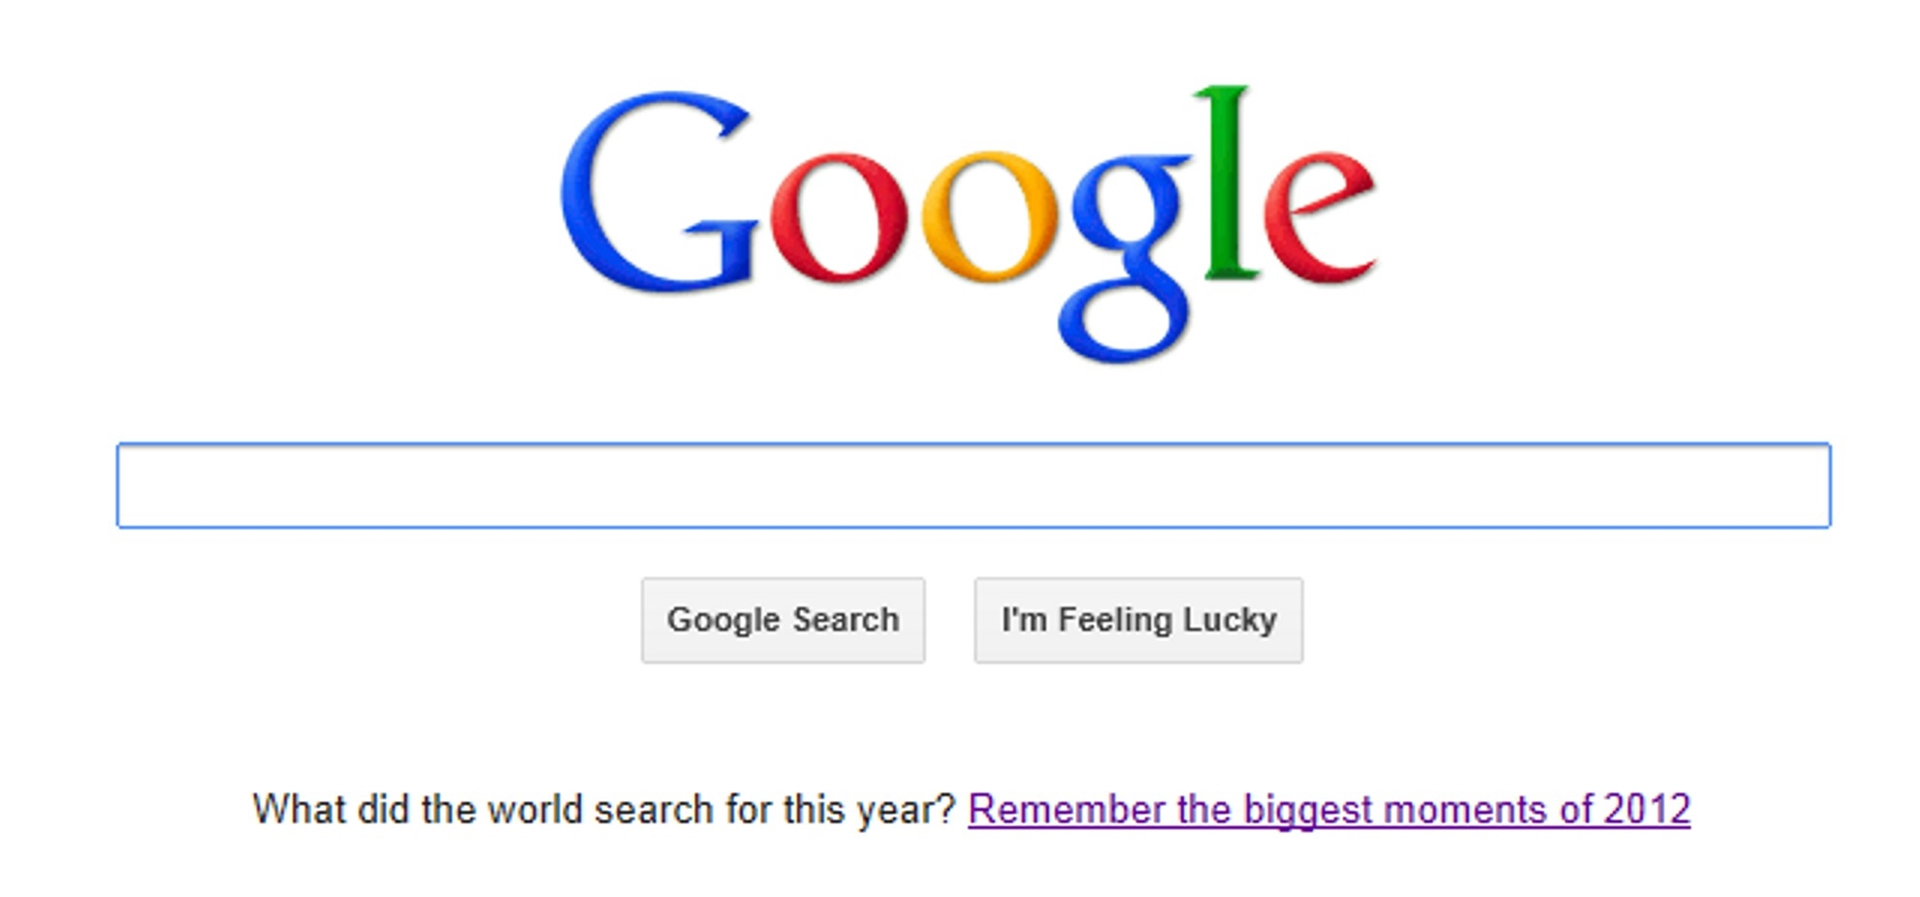 Google Biggest Moments 2012